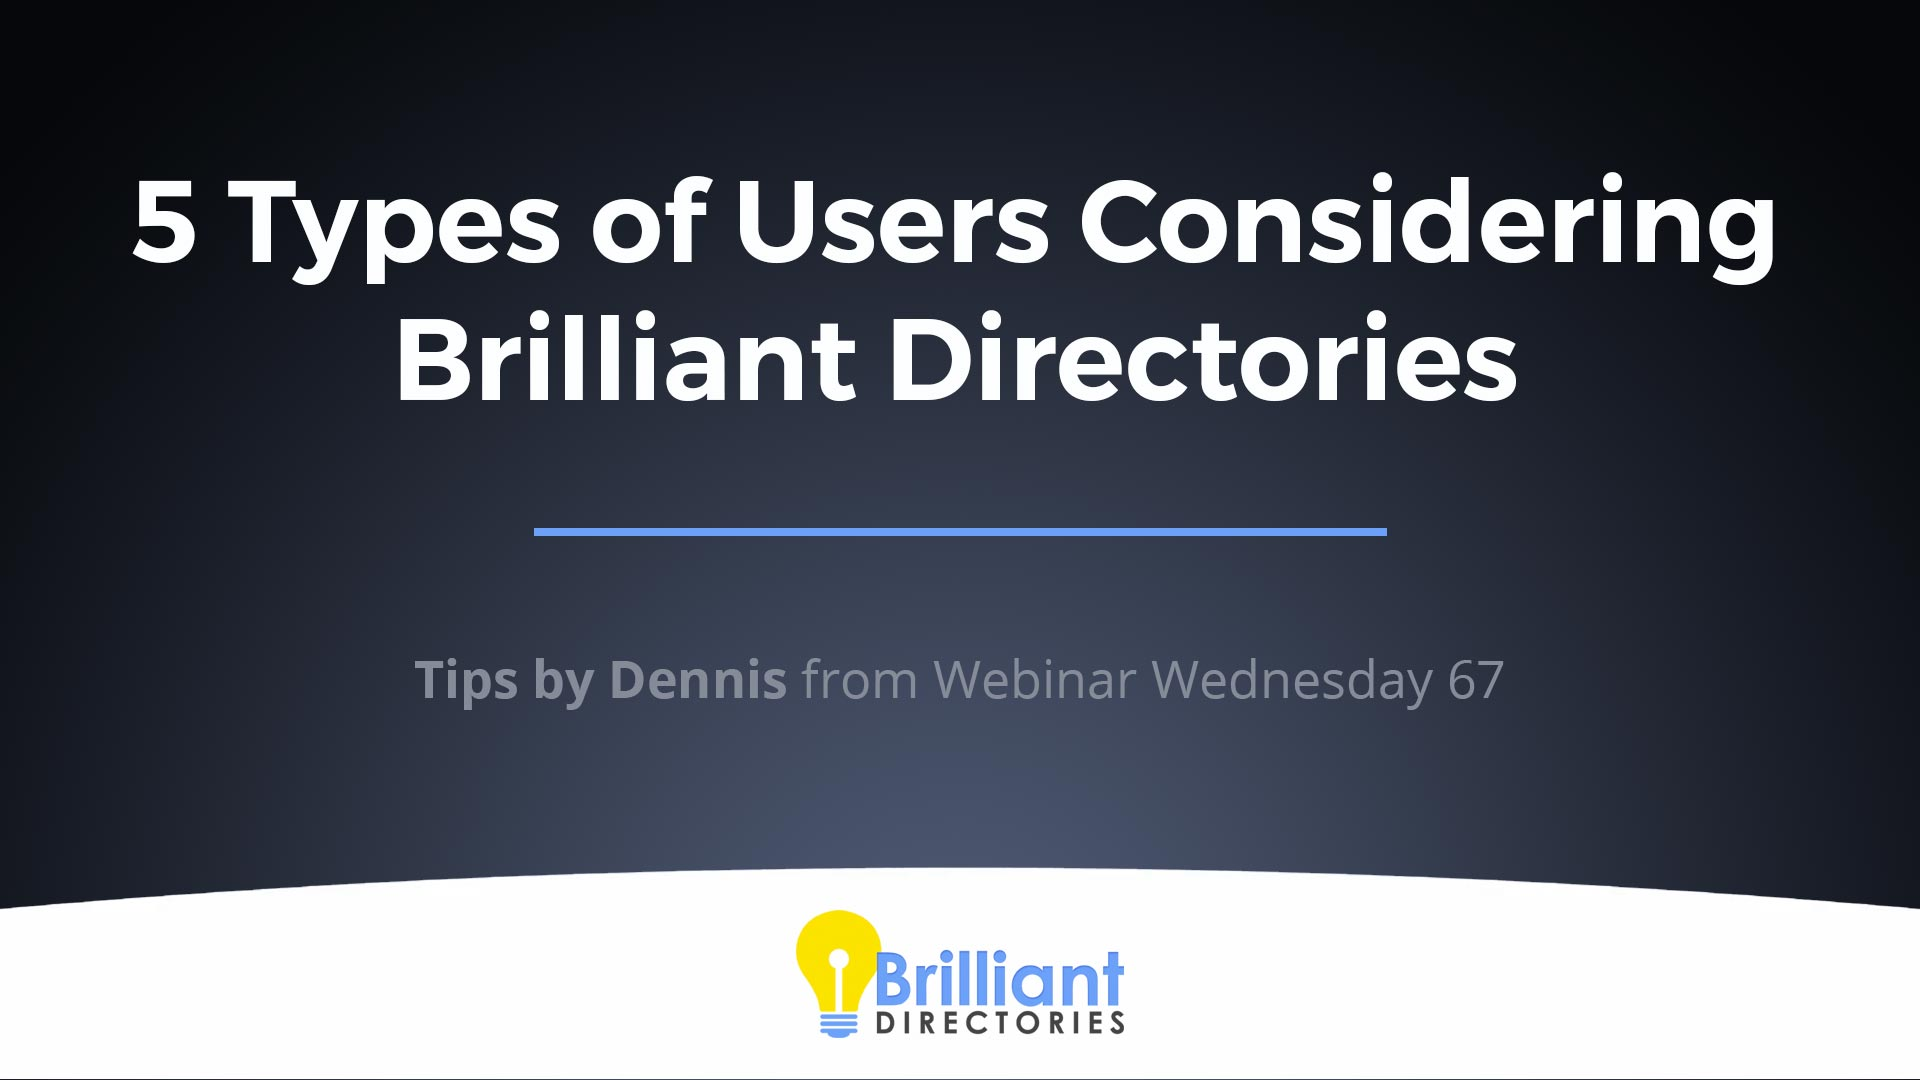 https://www.brilliantdirectories.com/blog/website-case-study-5-types-of-users-considering-brilliant-directories